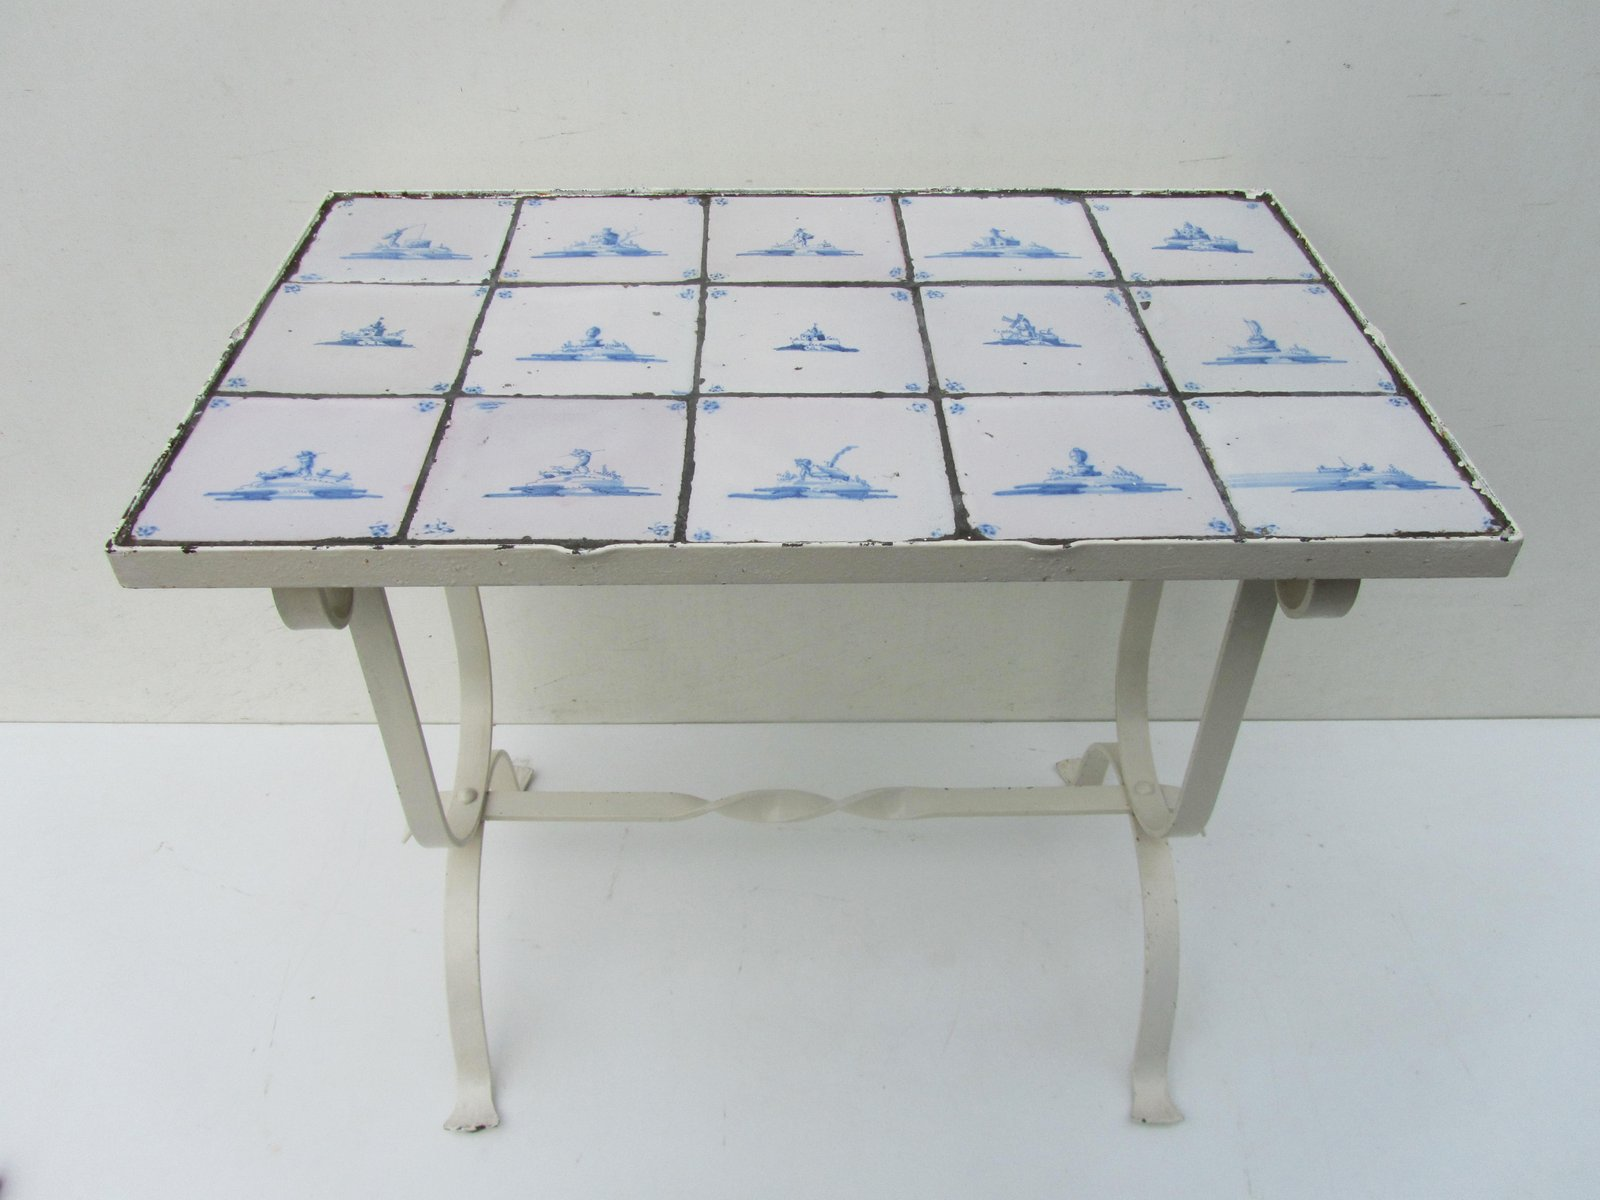 Vintage Side table with Antique Dutch Delft Tiles for sale at Pamono